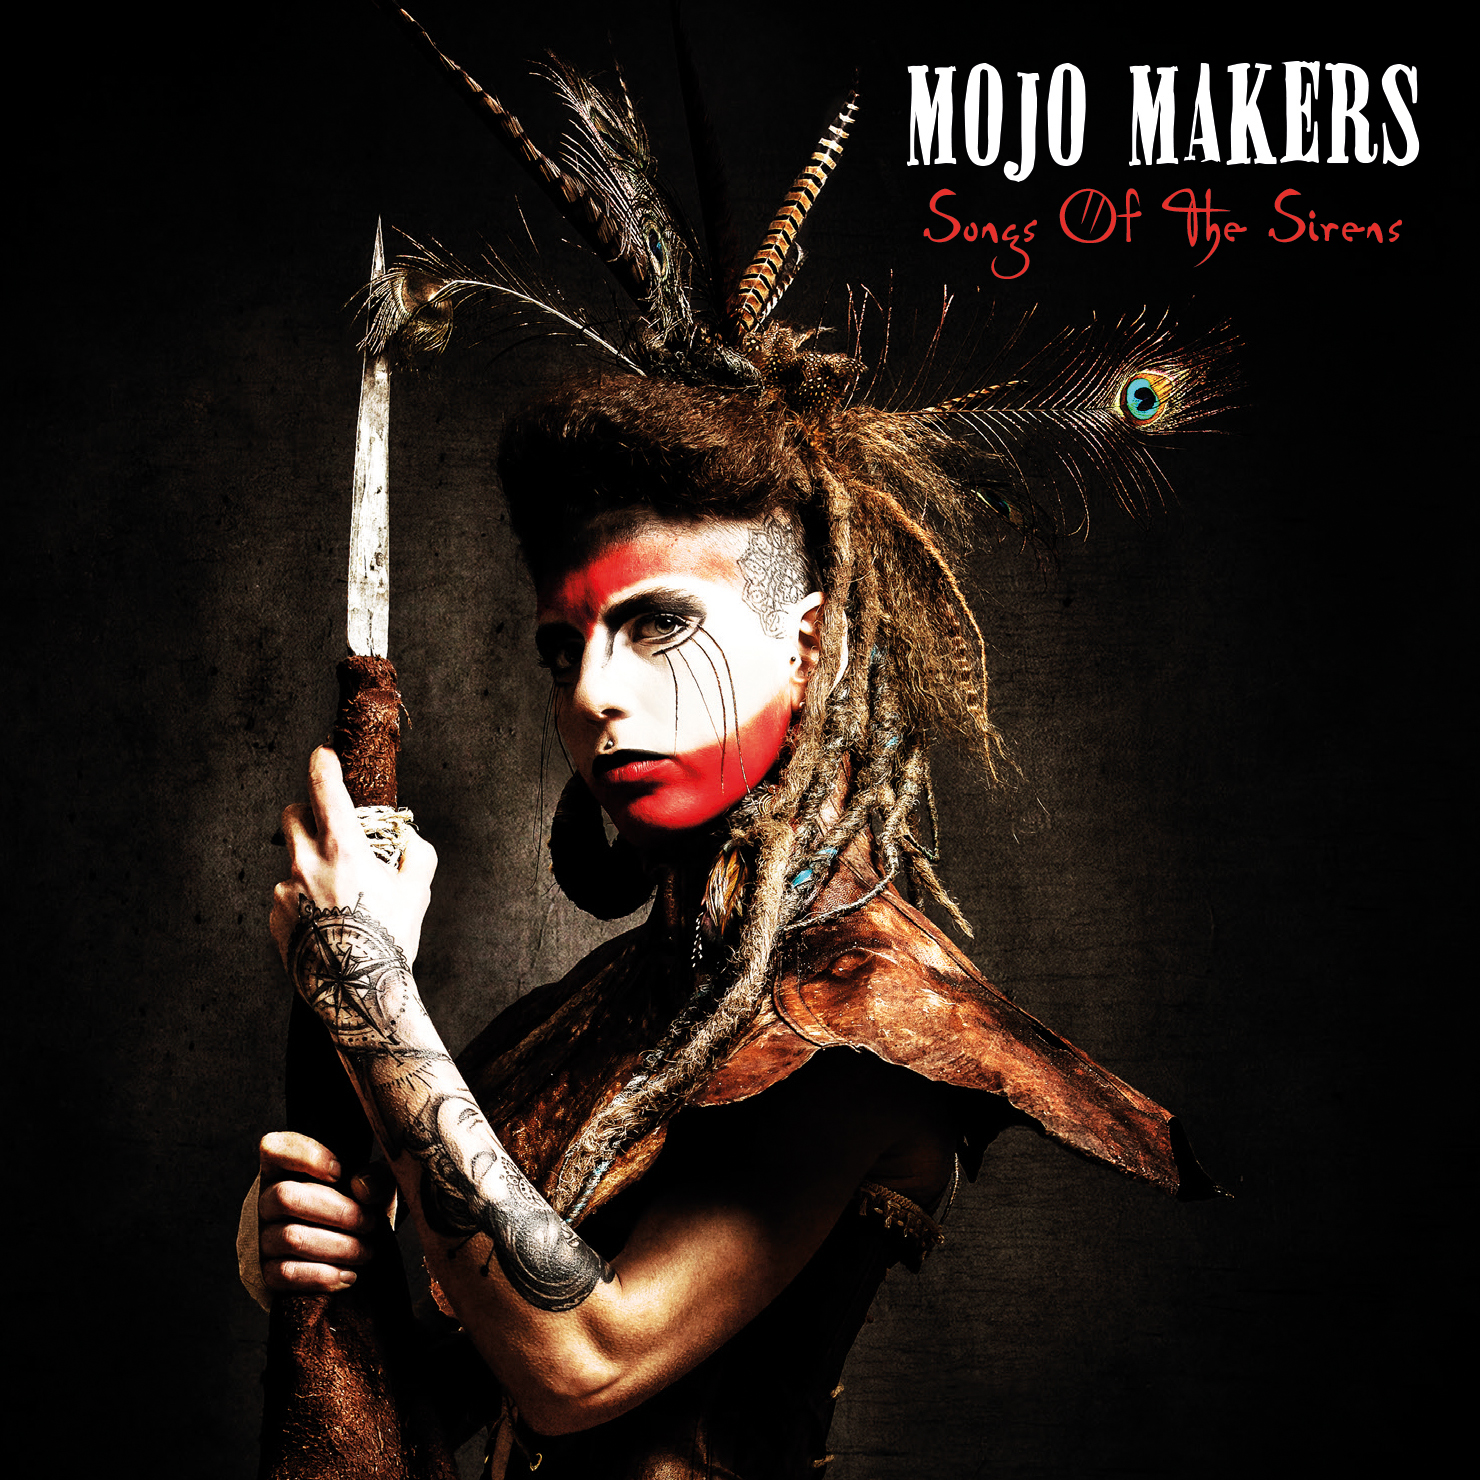 Blues Aus Dänemark Mojo Makers Neues Album Songs Of The Sirens